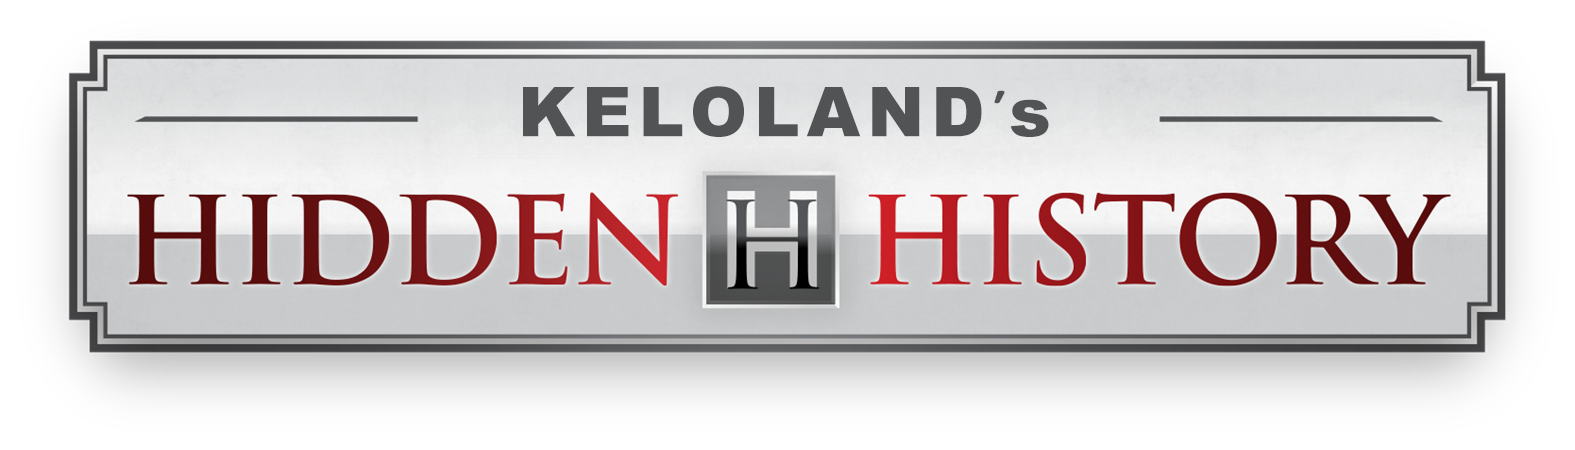 HiddenHistoryLogo